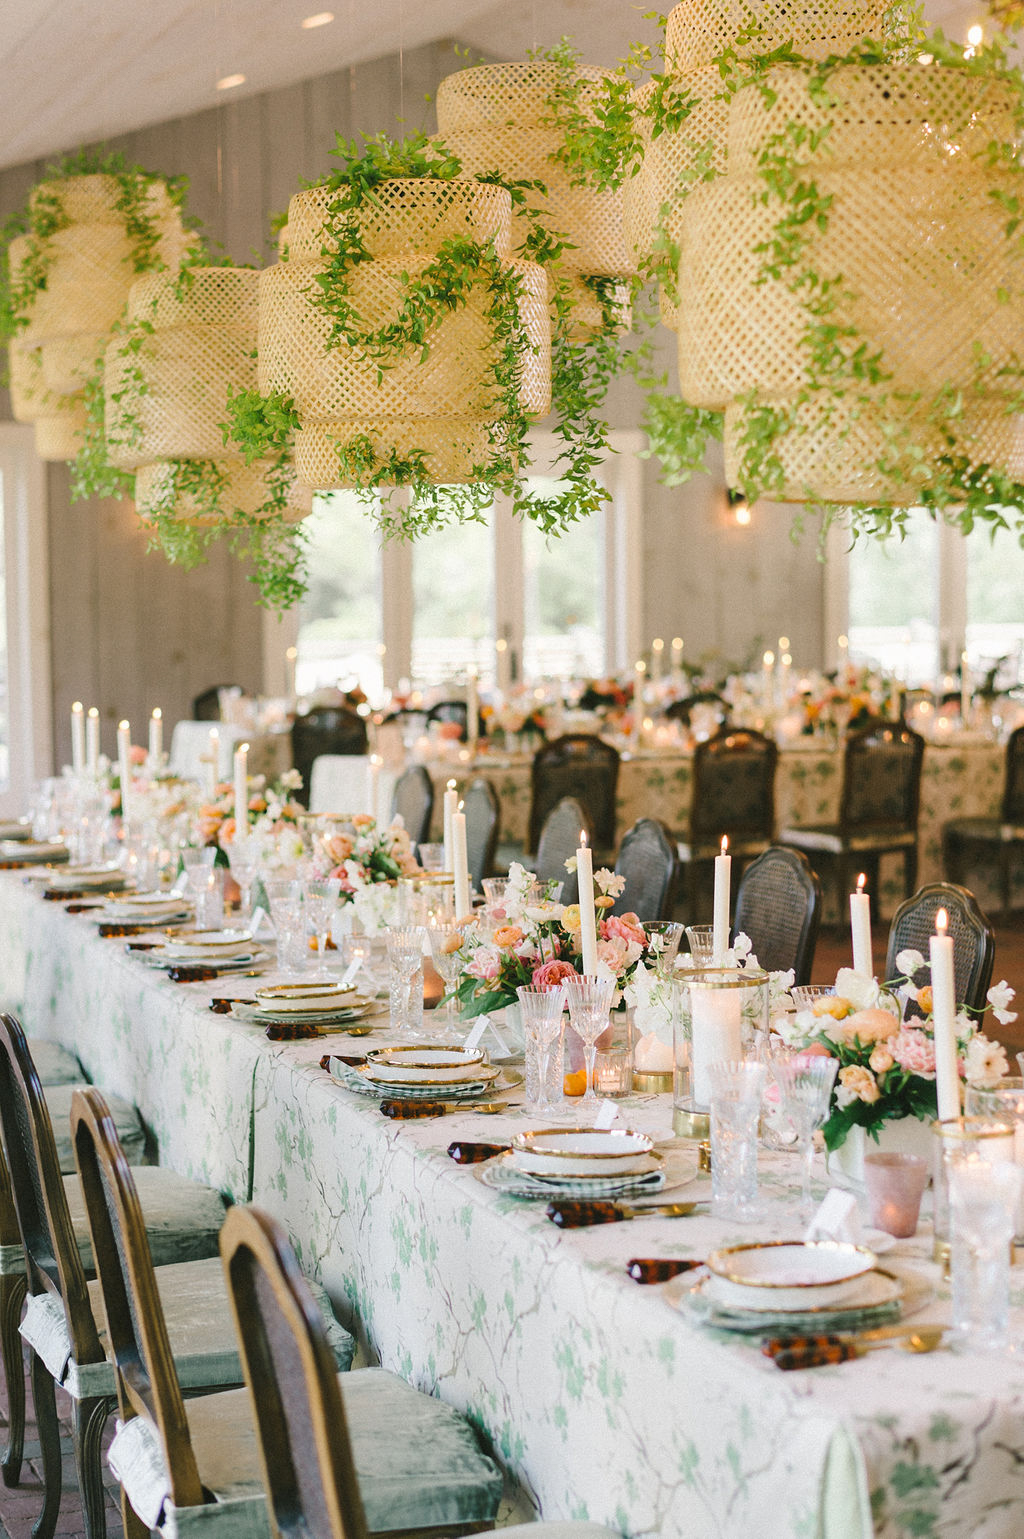 long elegant tables with citrus, green, and gold decorations